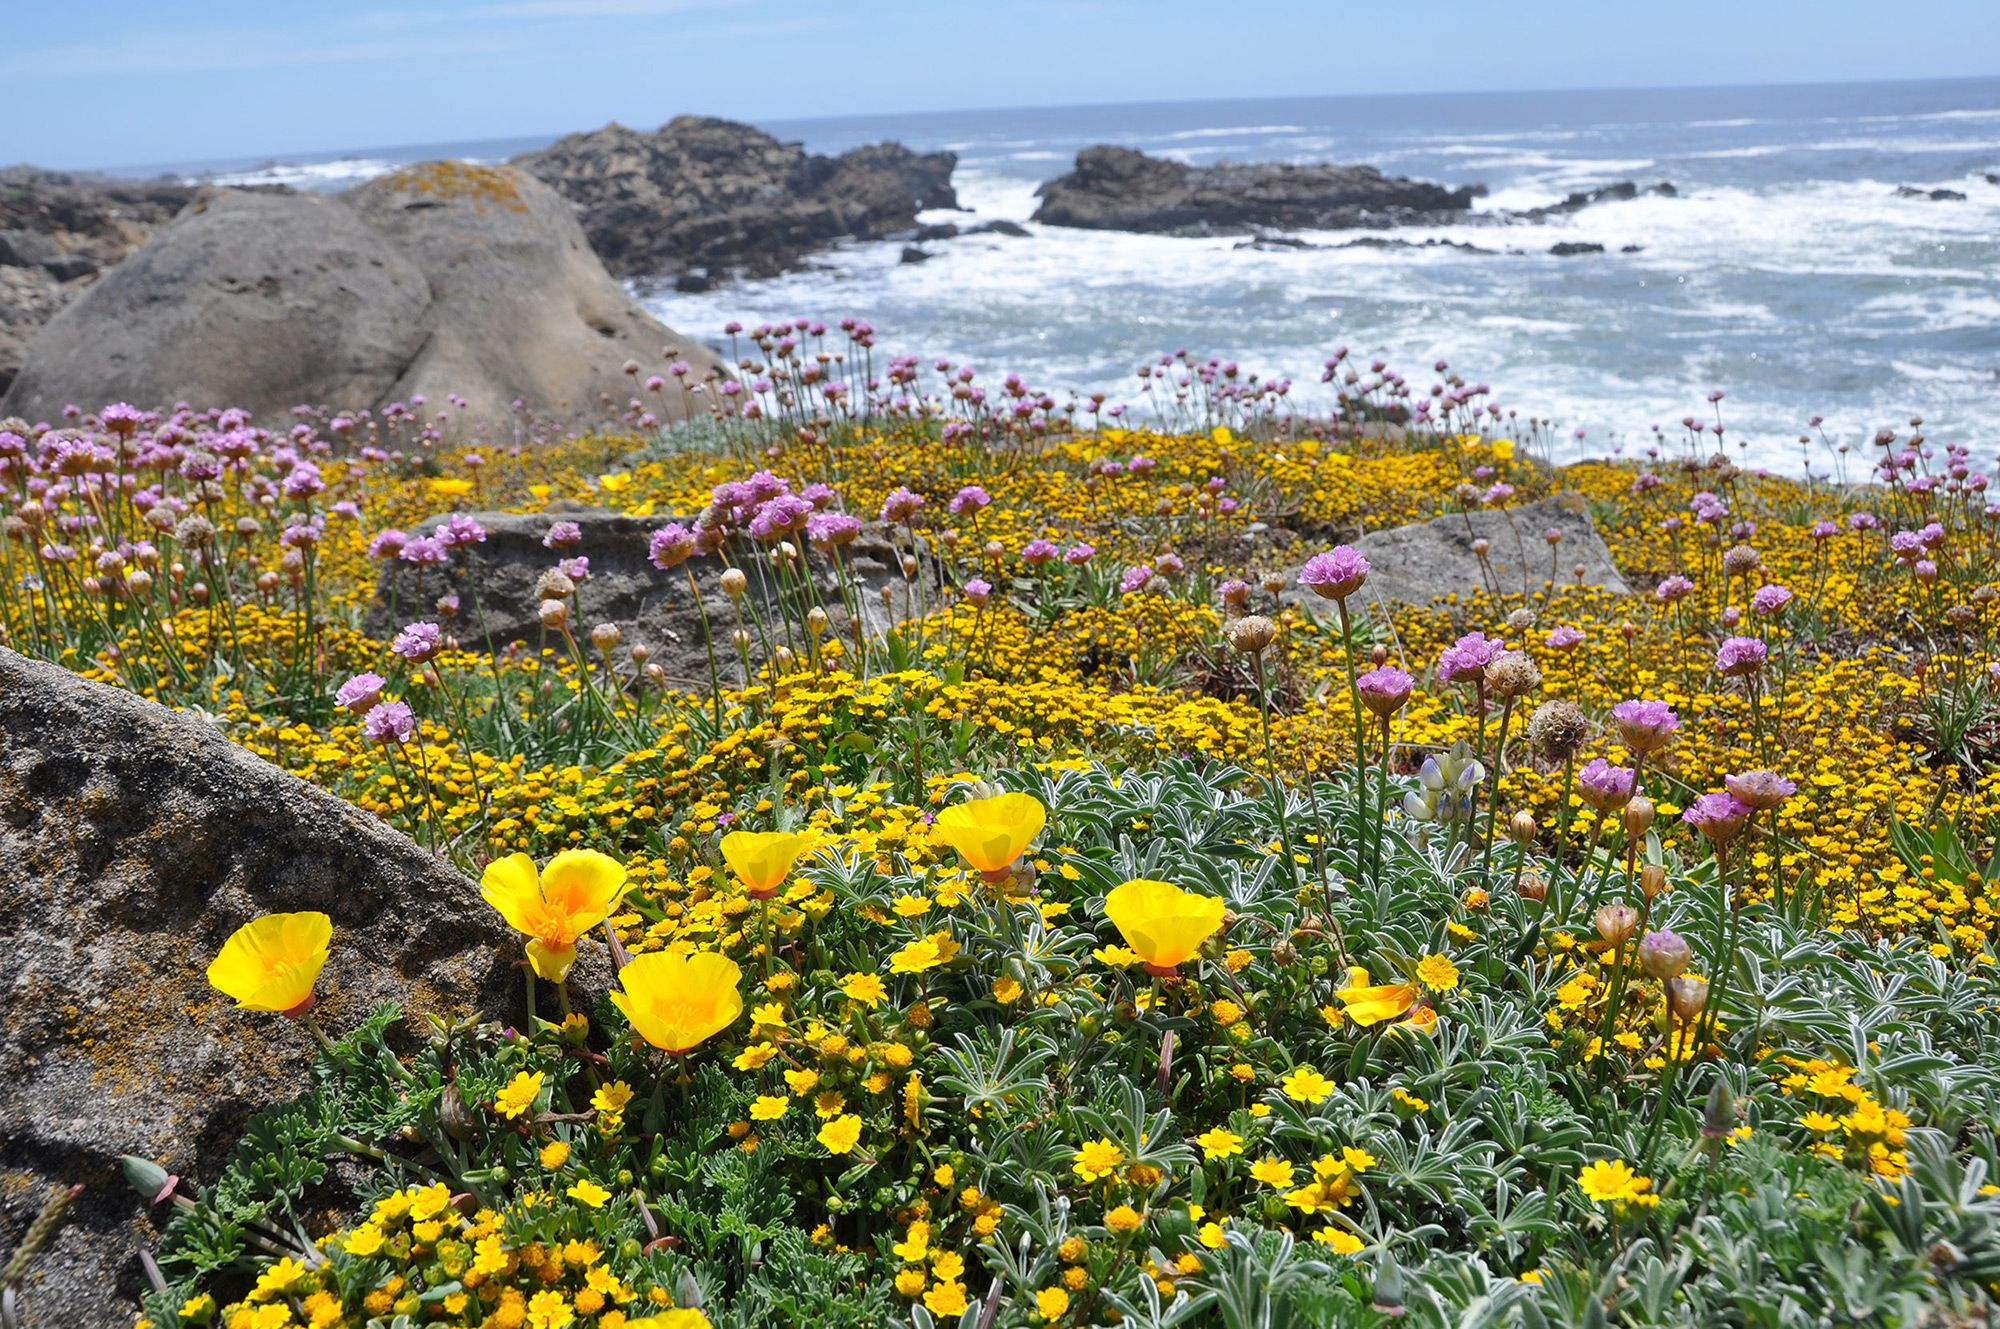 Naturalists at Large, Wildflowers